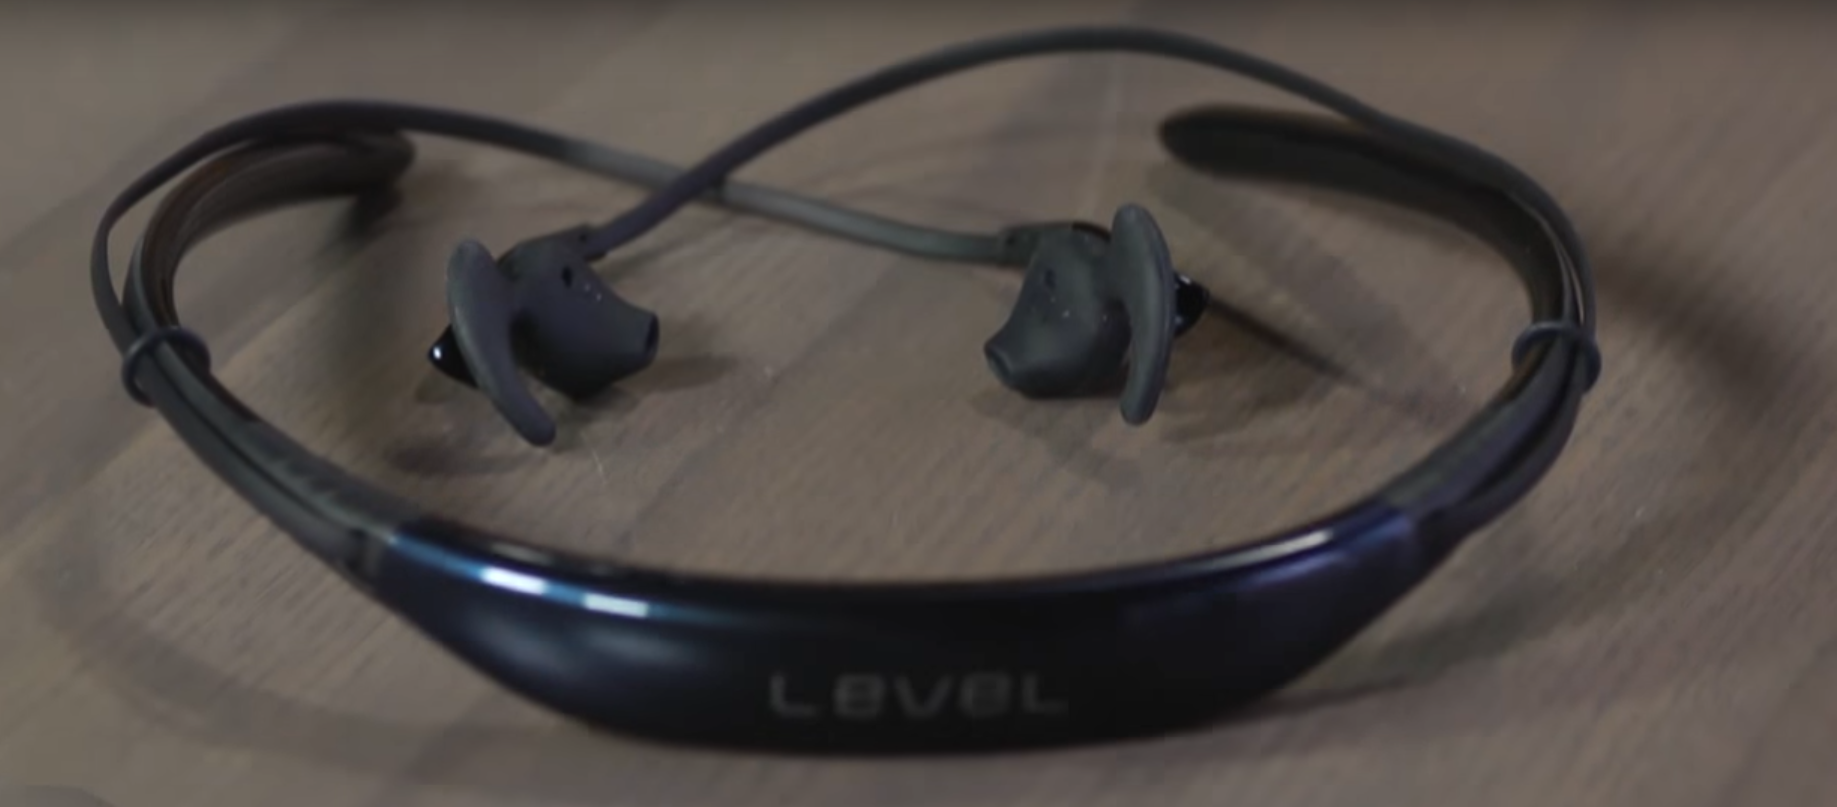 Samsung level U wireless neckband headphones gain the momentum.